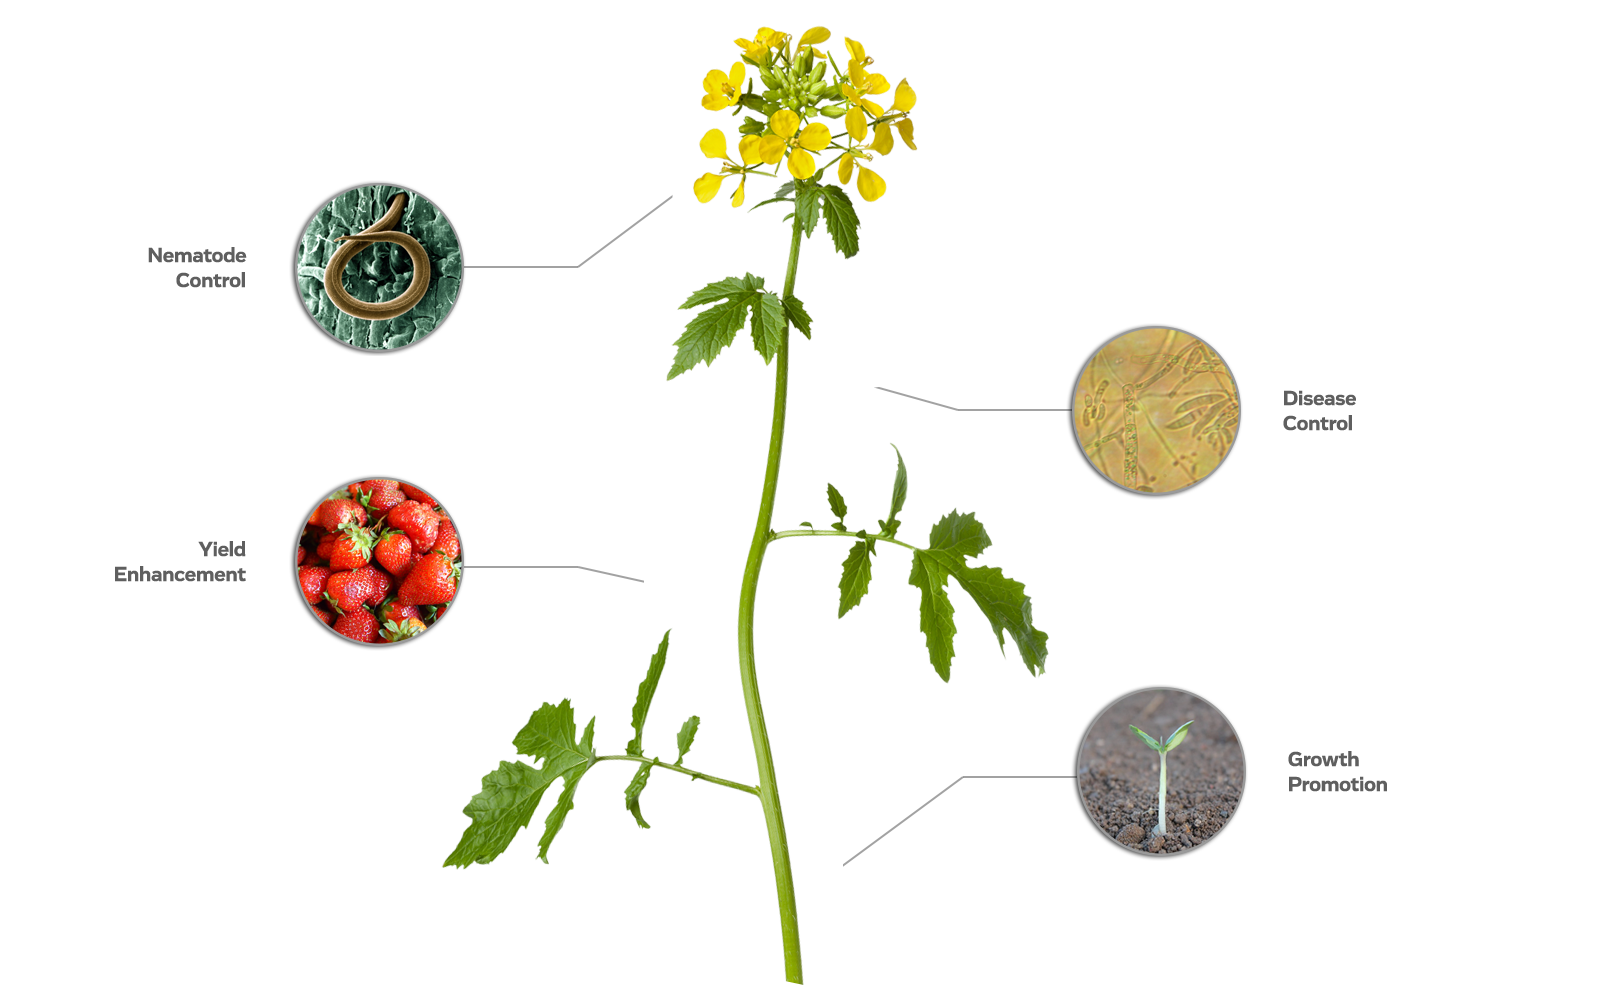 An image of a mustard plant showcases ways in which MustGrow's products can help to increase the health and yield of crop growth.